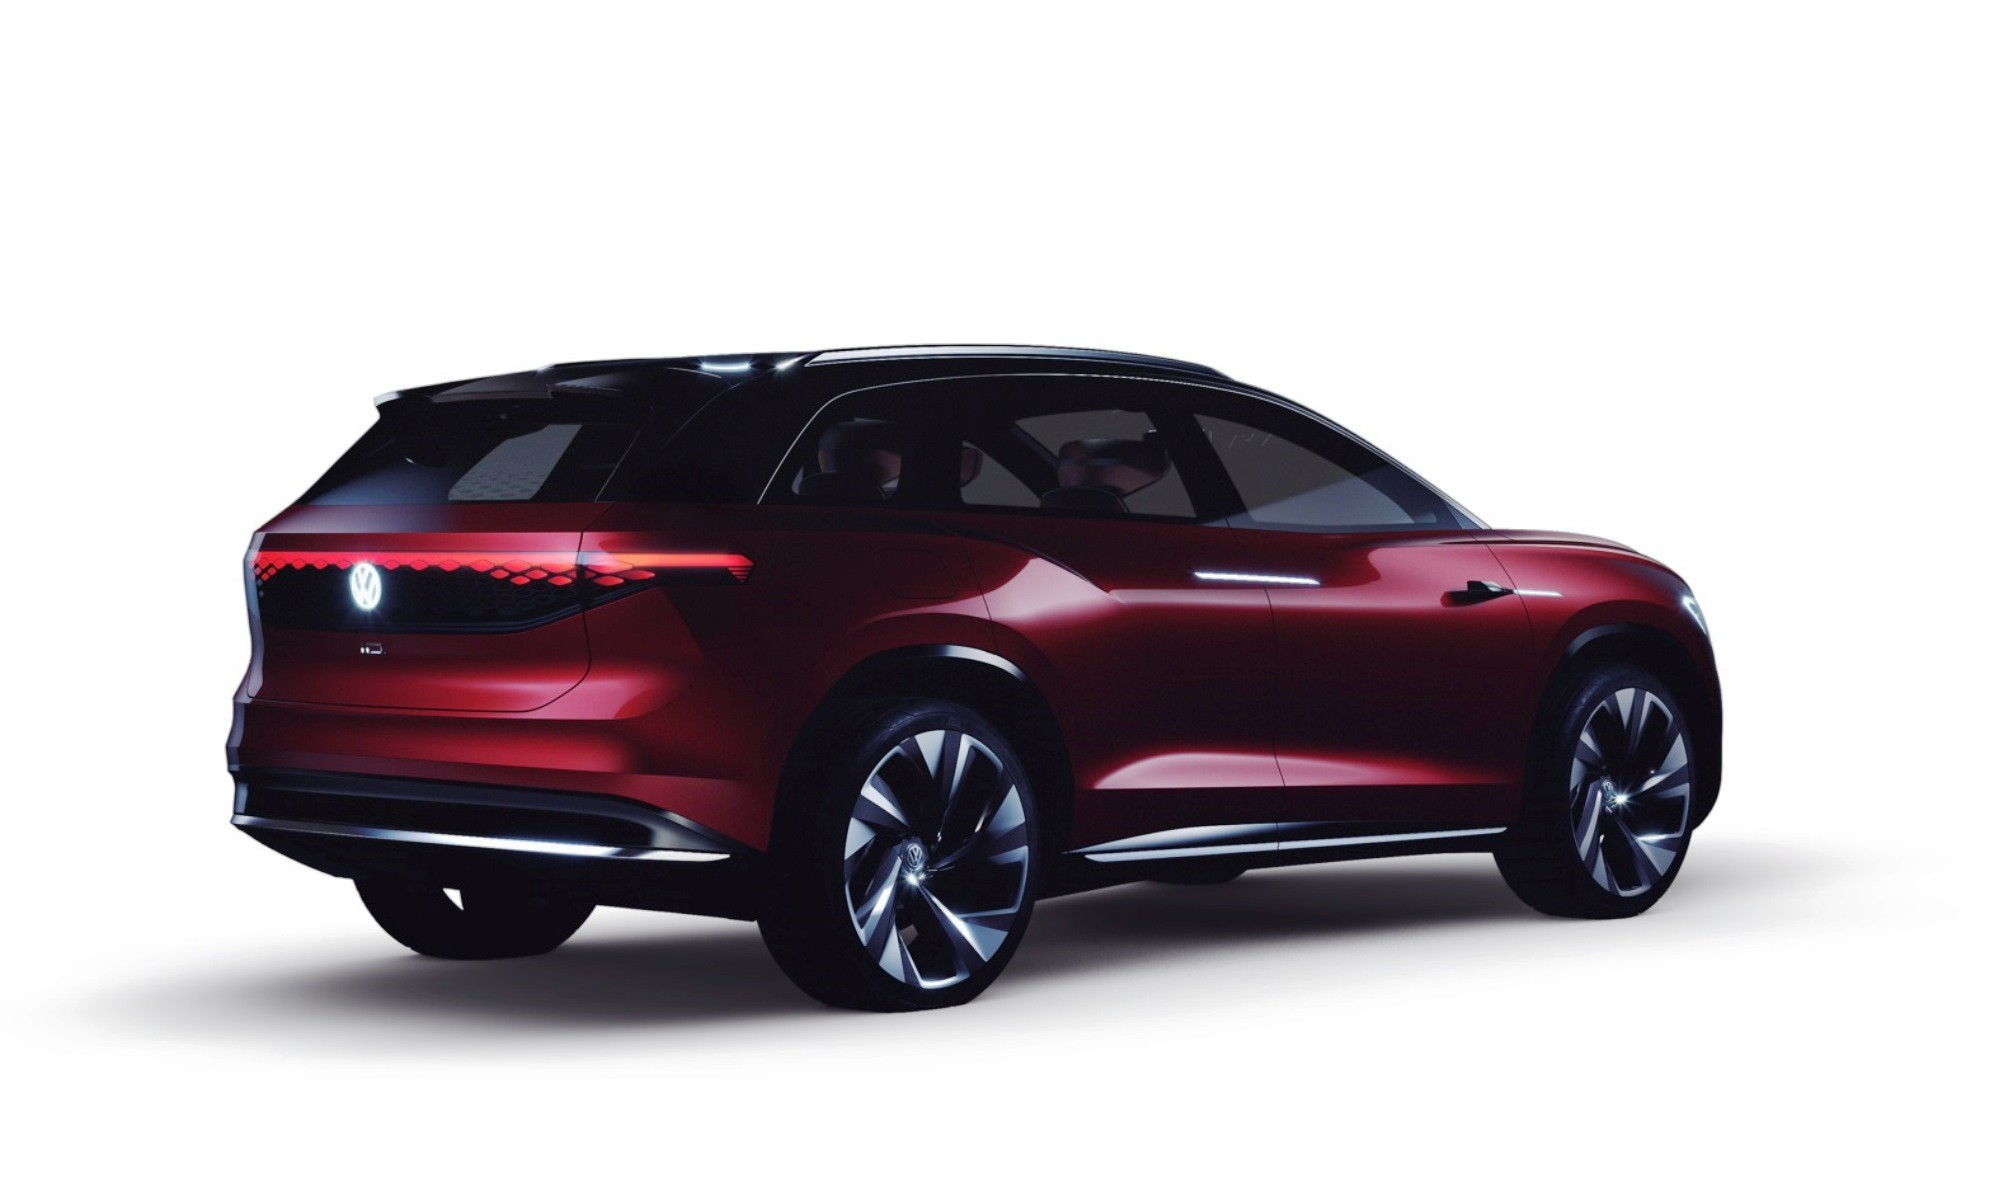 VW ID Roomzz Concept rear